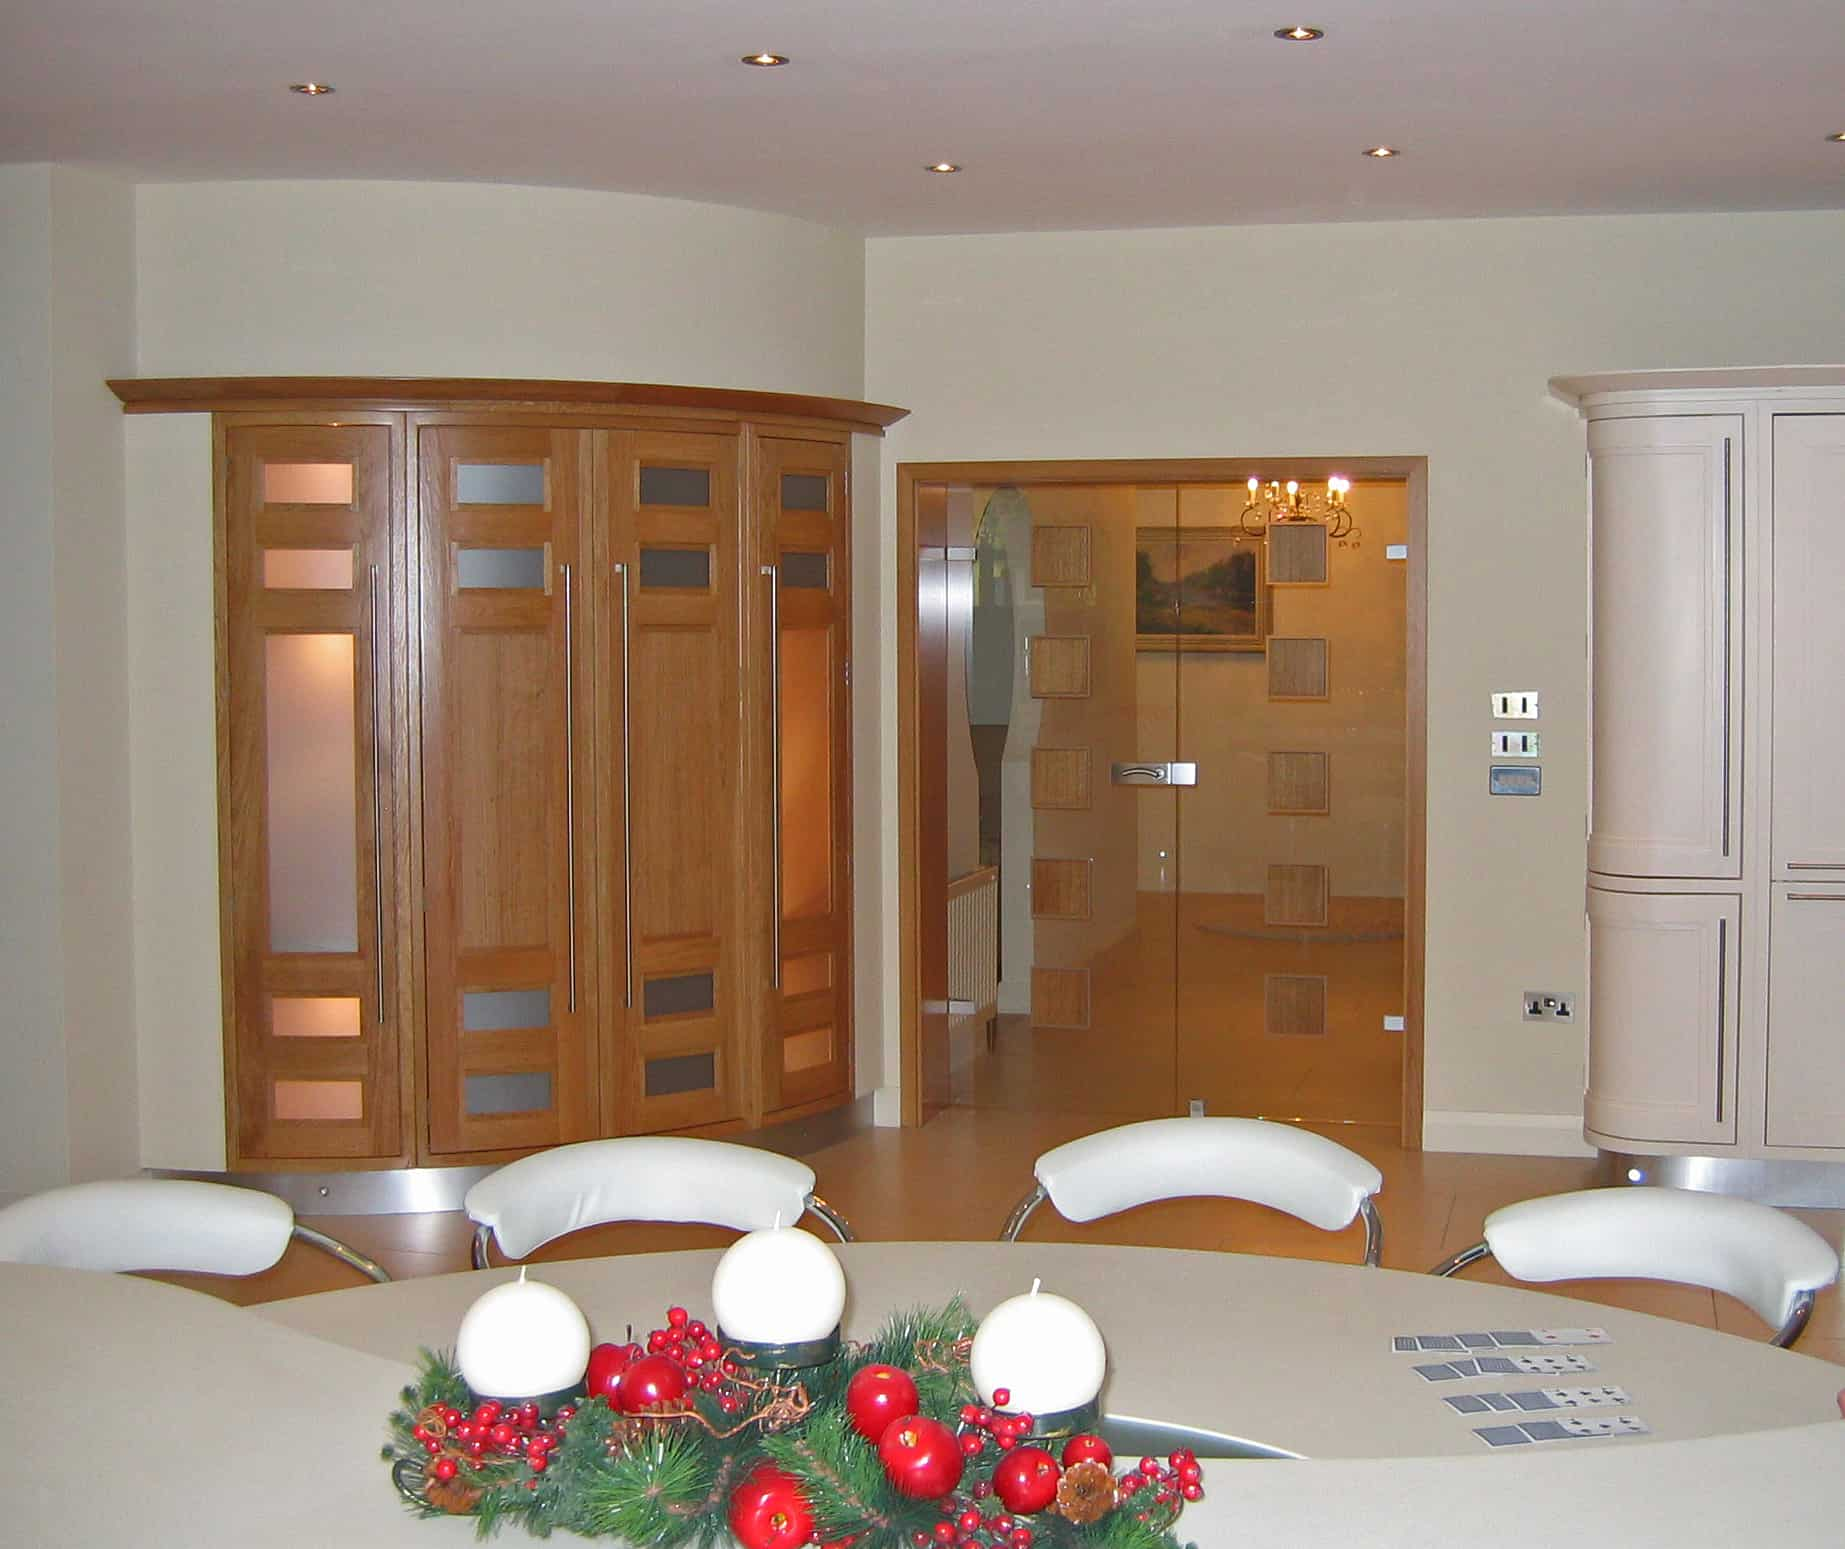 Mullen Extension - View form Behind Kitchen Island To Glass Doors